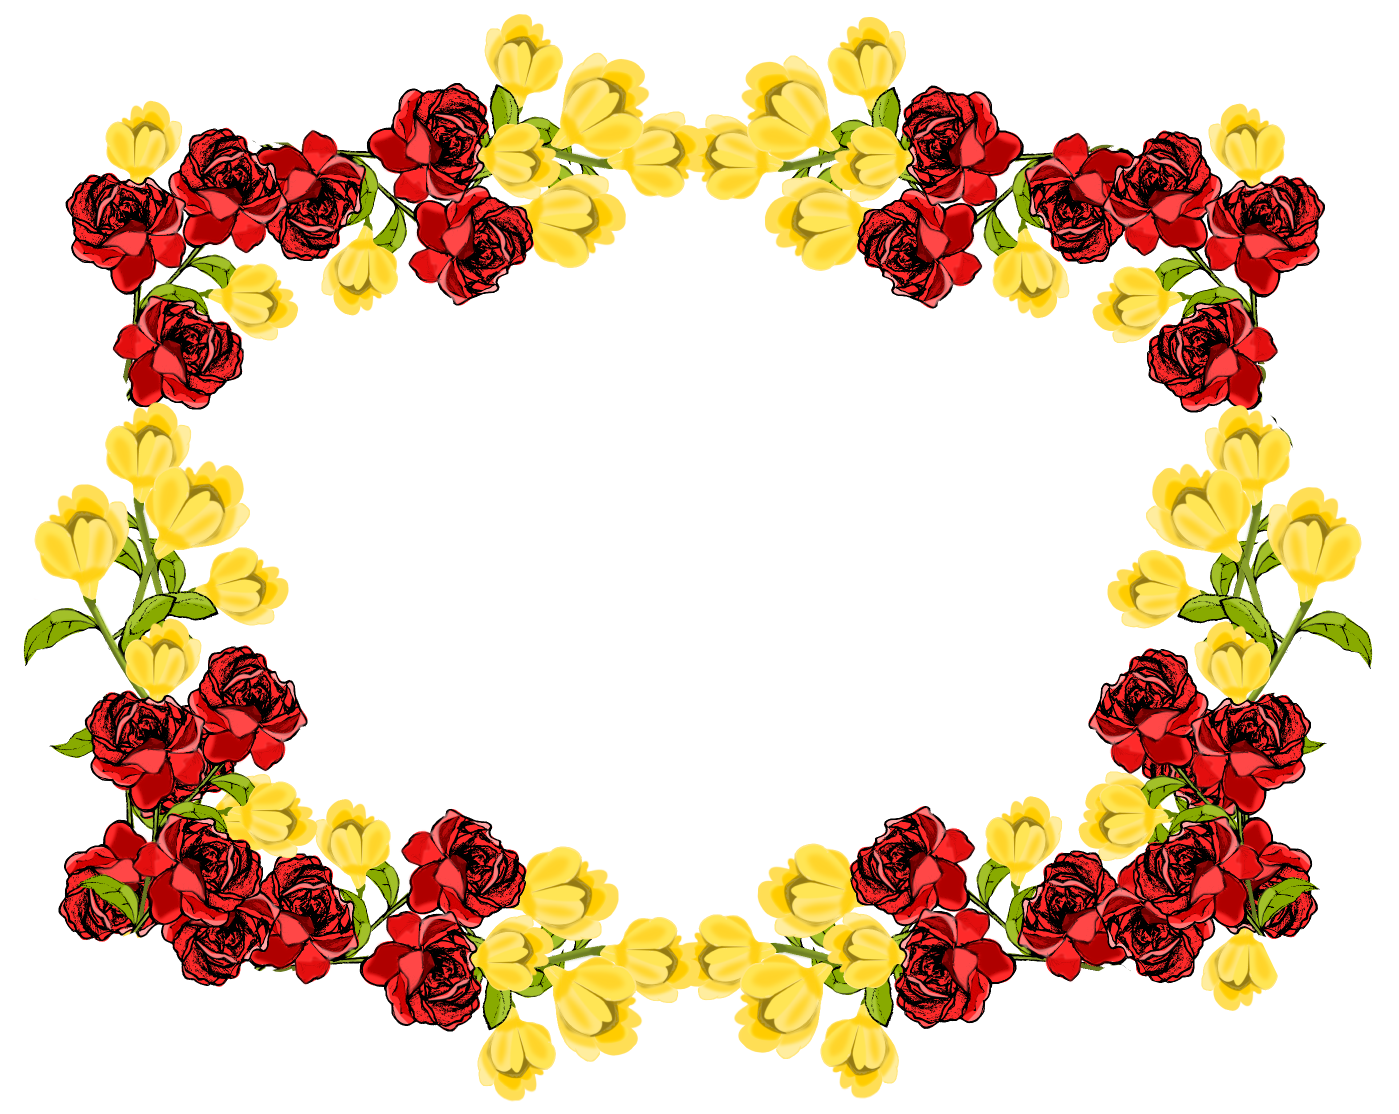 Flower Frame PNG Images Transparent Free Download.